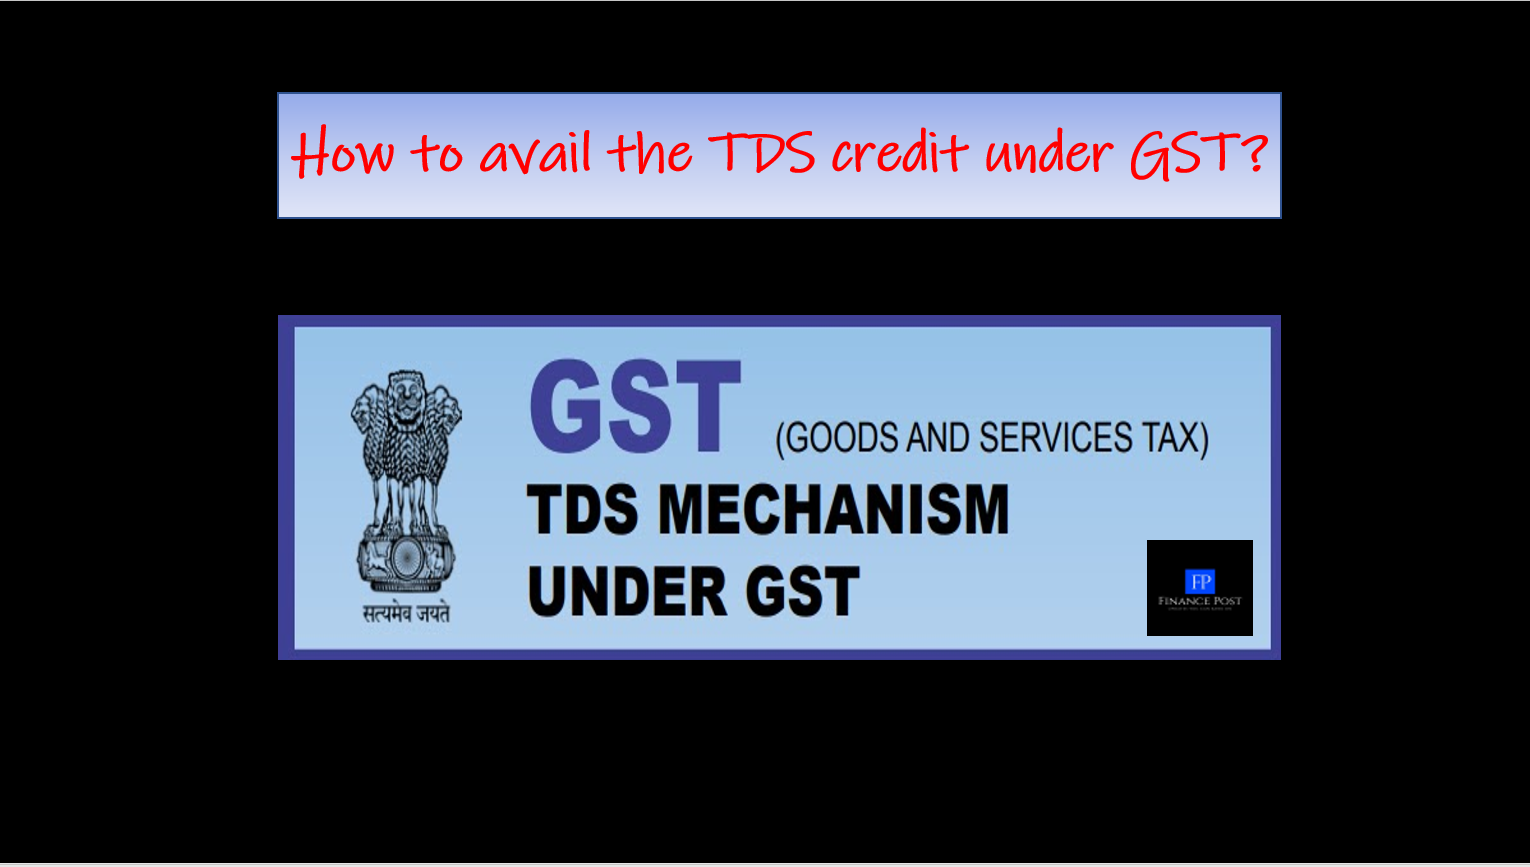 how to avail the TDS credit under GST?